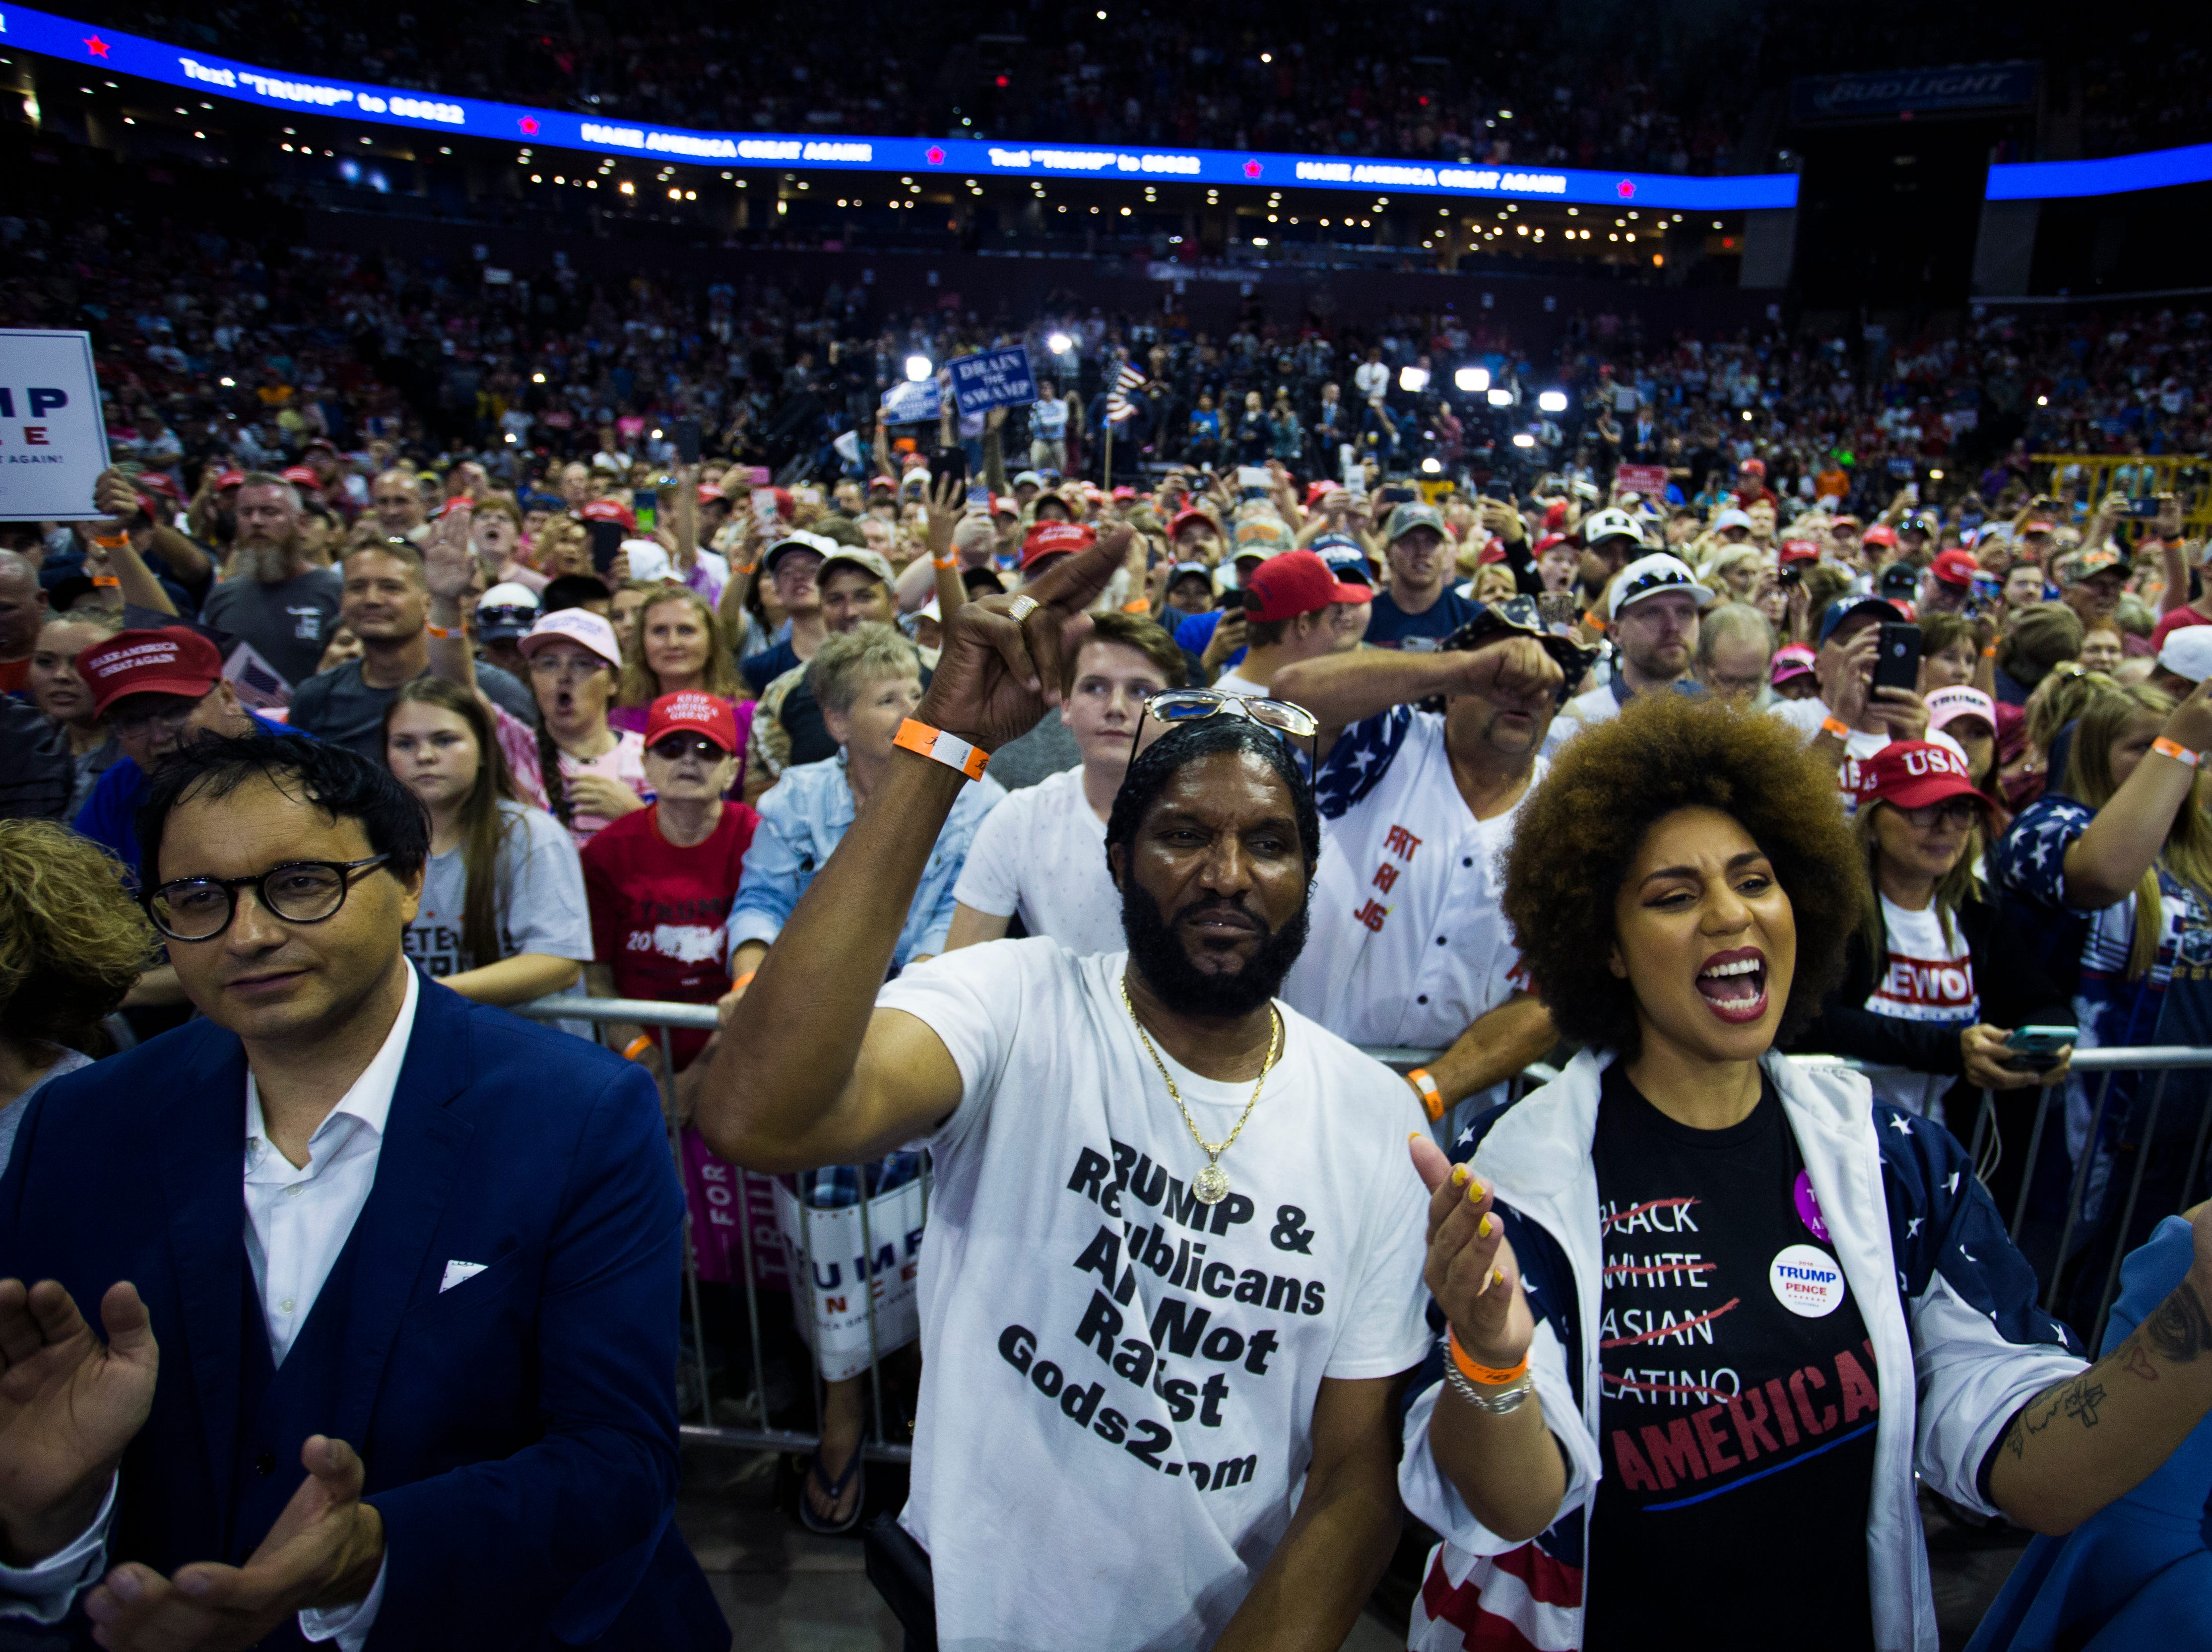 Supporters of Donald Trump cheer him on during a rally at JQH Arena in Springfield on Friday, Sept. 21, 2018